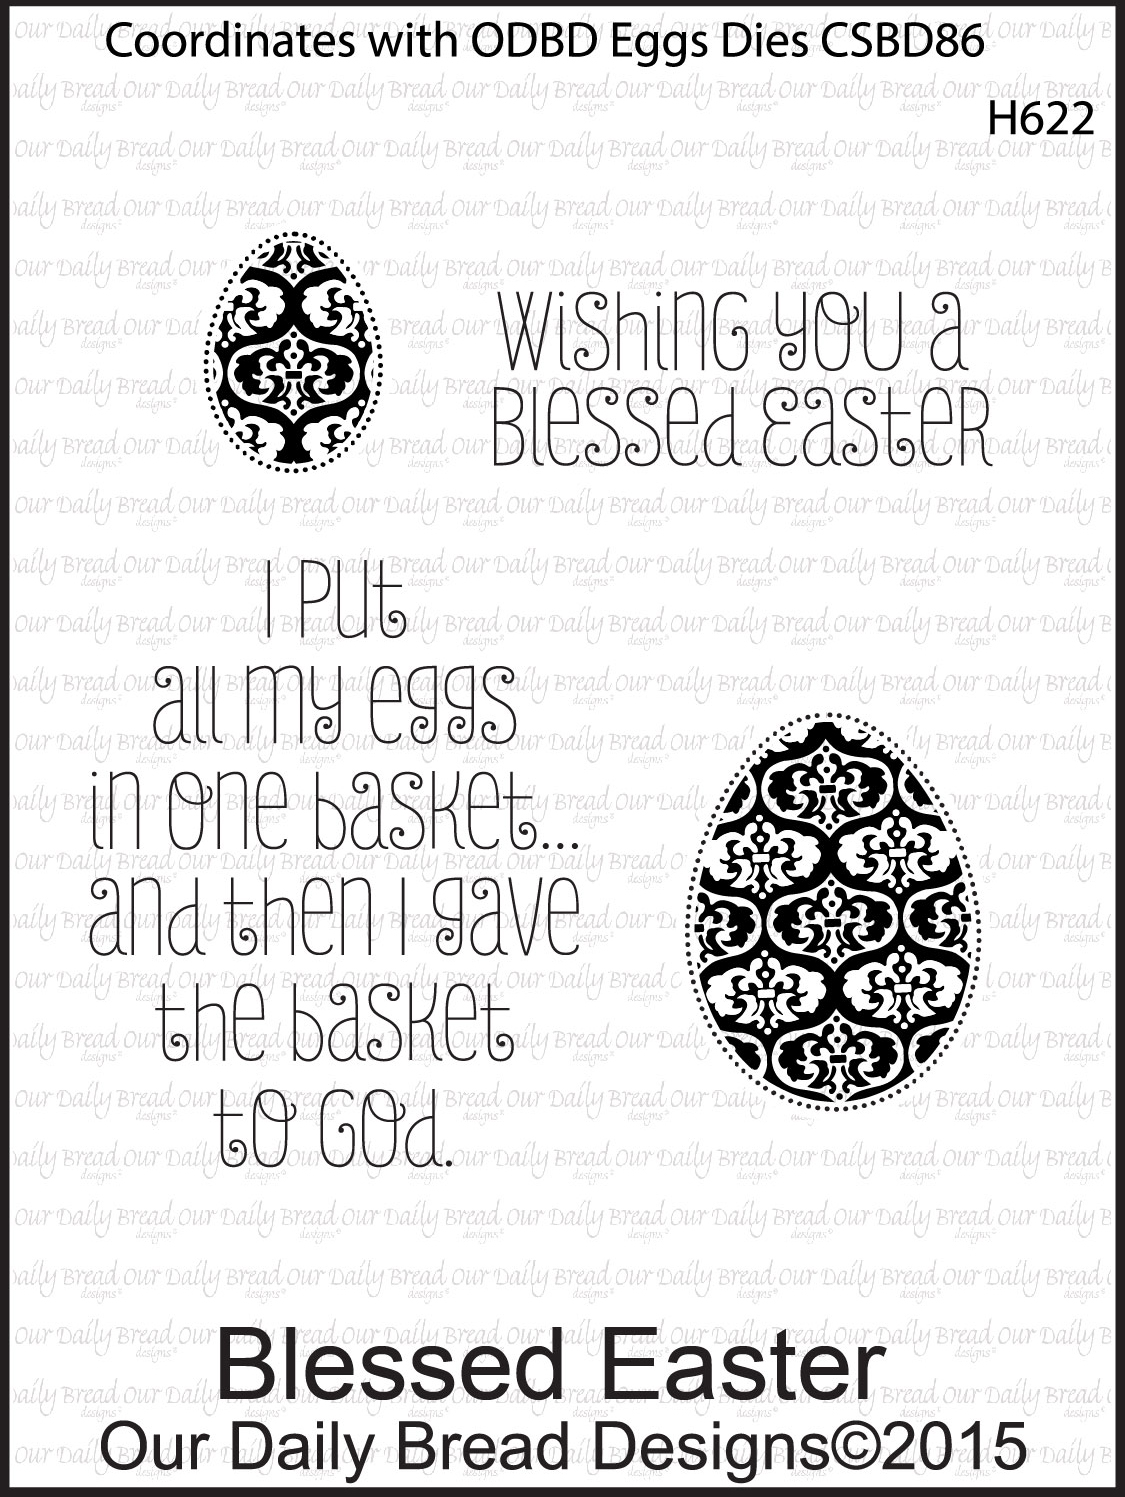 Stamps - Our Daily Bread Designs Blessed Easter